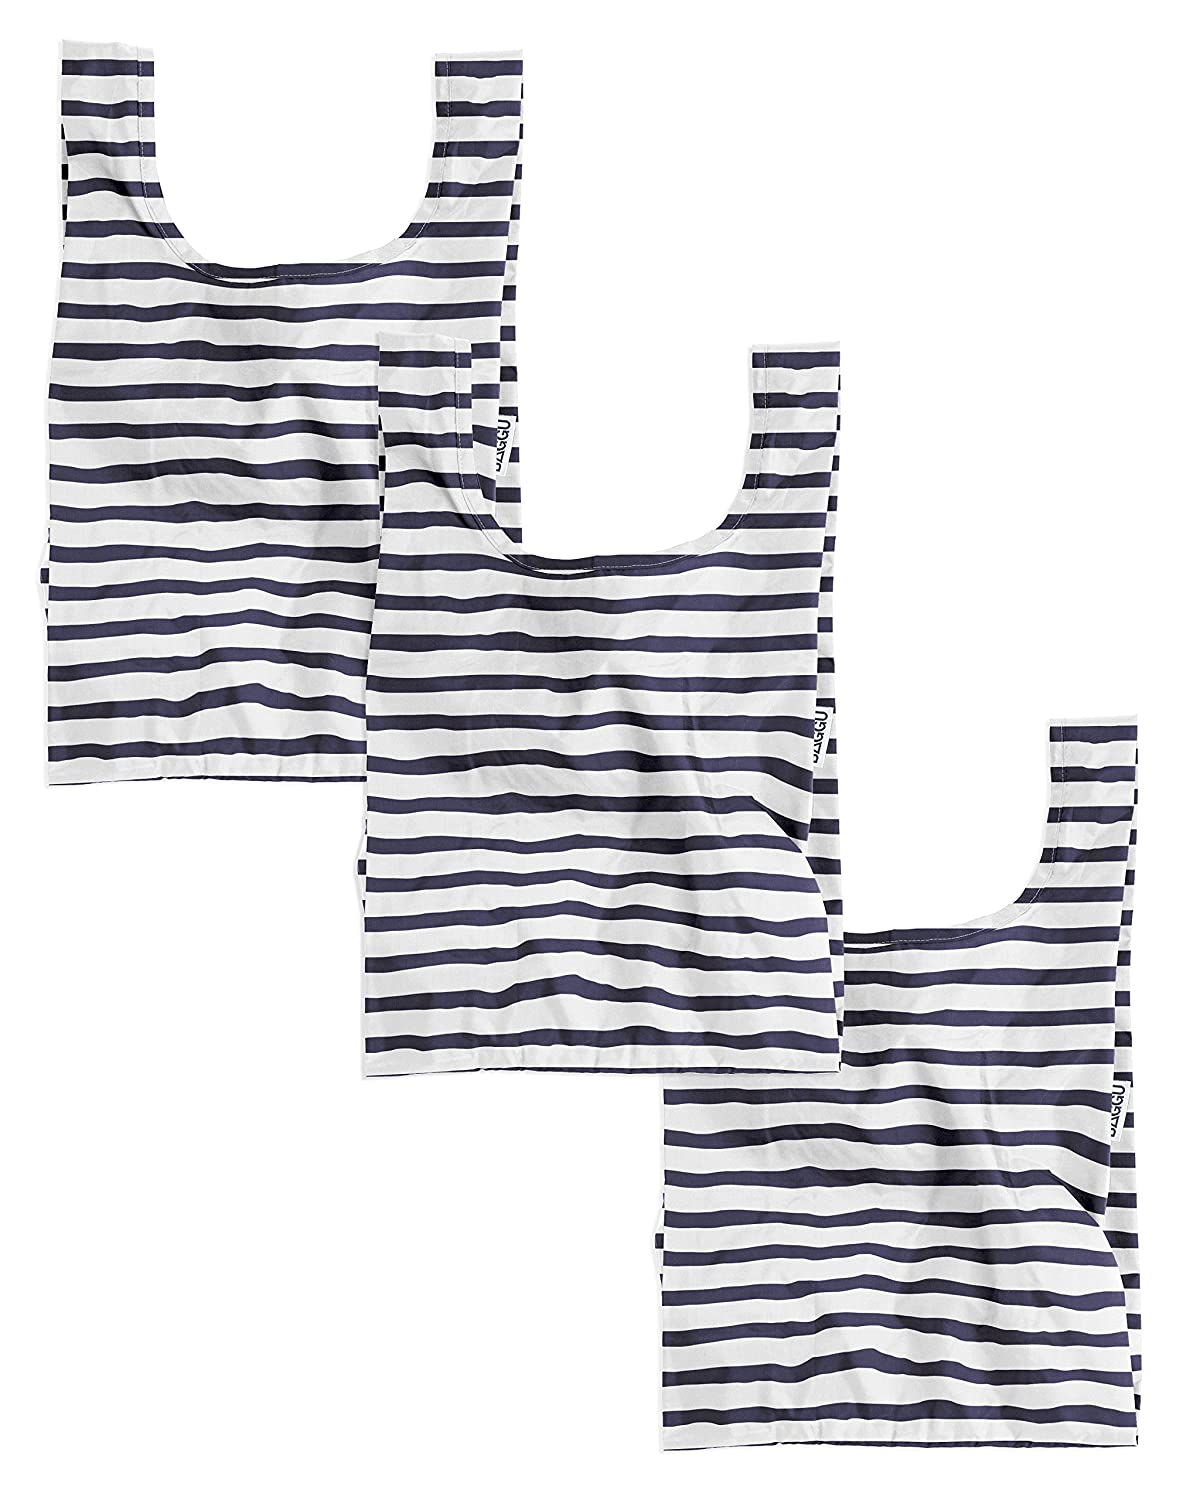 BAGGU Small Reusable Shopping BagSailor Stripe by BAGGU B01E4HQ2WO  Sailor Stripe 3 Pack One Size